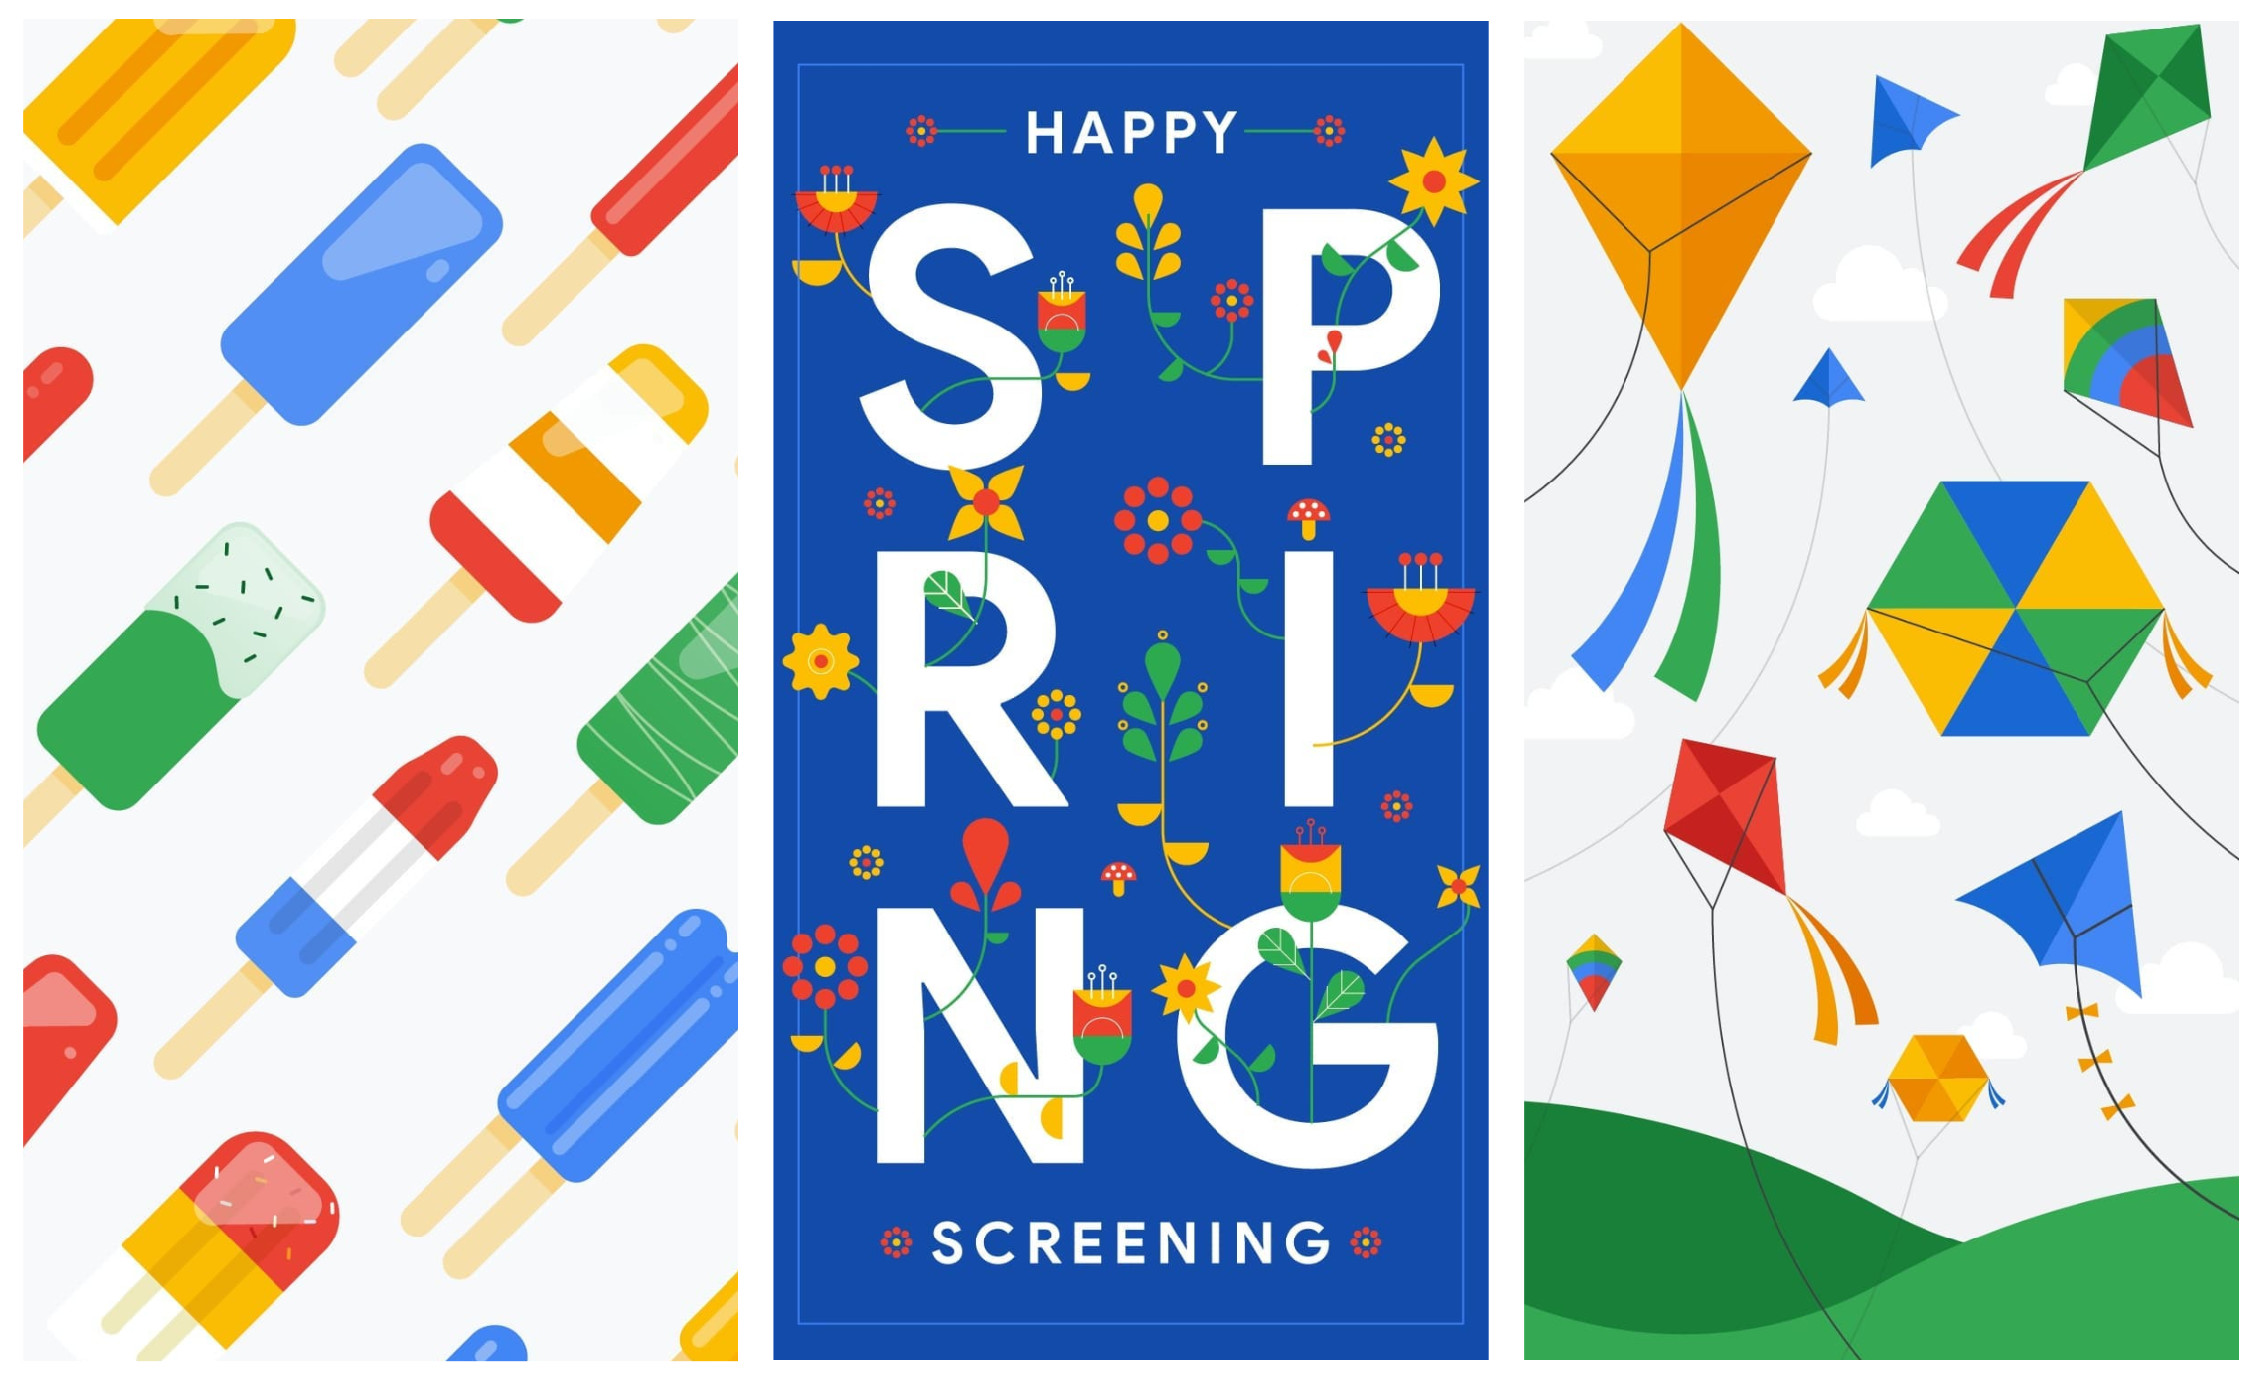 Res: 2258x1379, ... is finally relenting, and Google seems to be getting into the vernal  spirit: the company shared a number of spring-themed wallpapers on its  Instagram ...